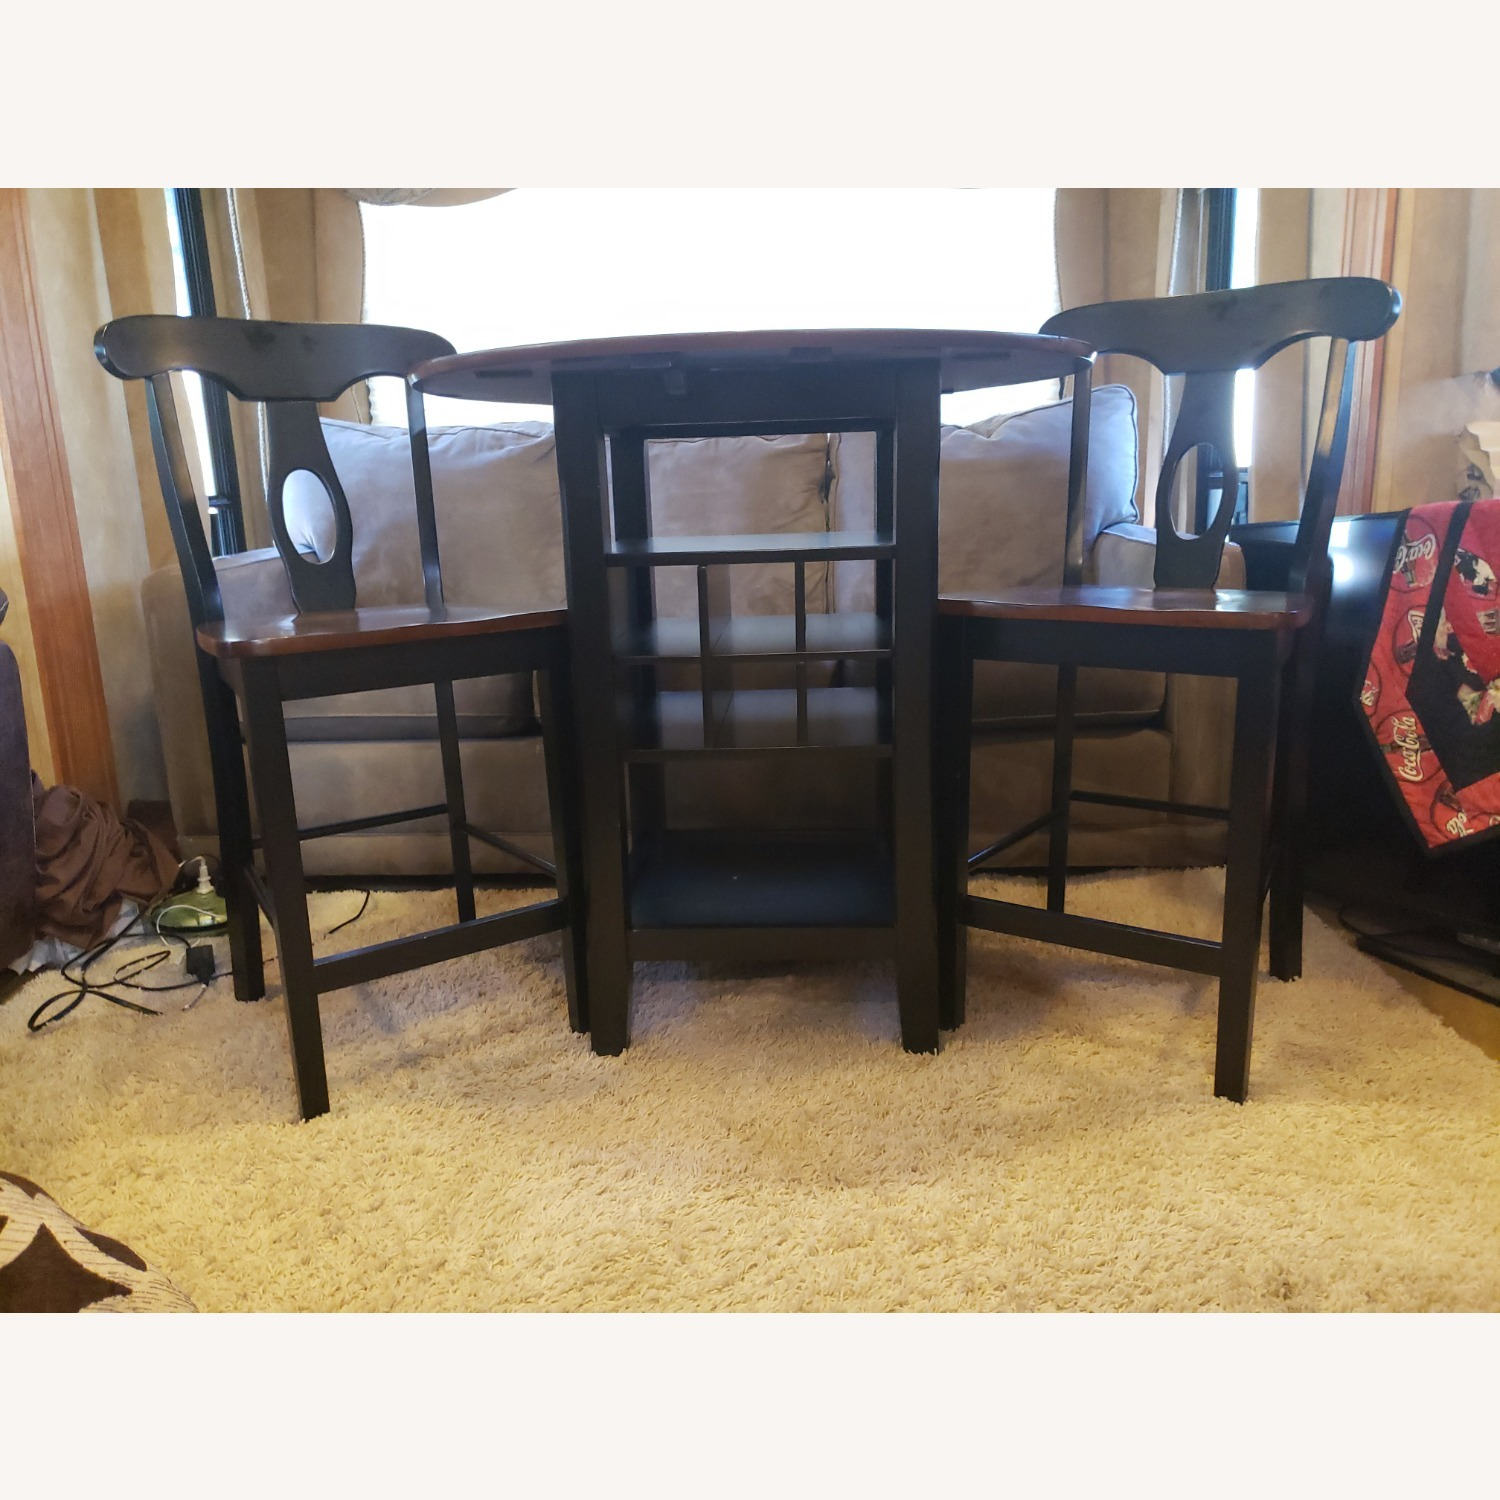 Bistro Dining Set with Drop Leaves - image-2